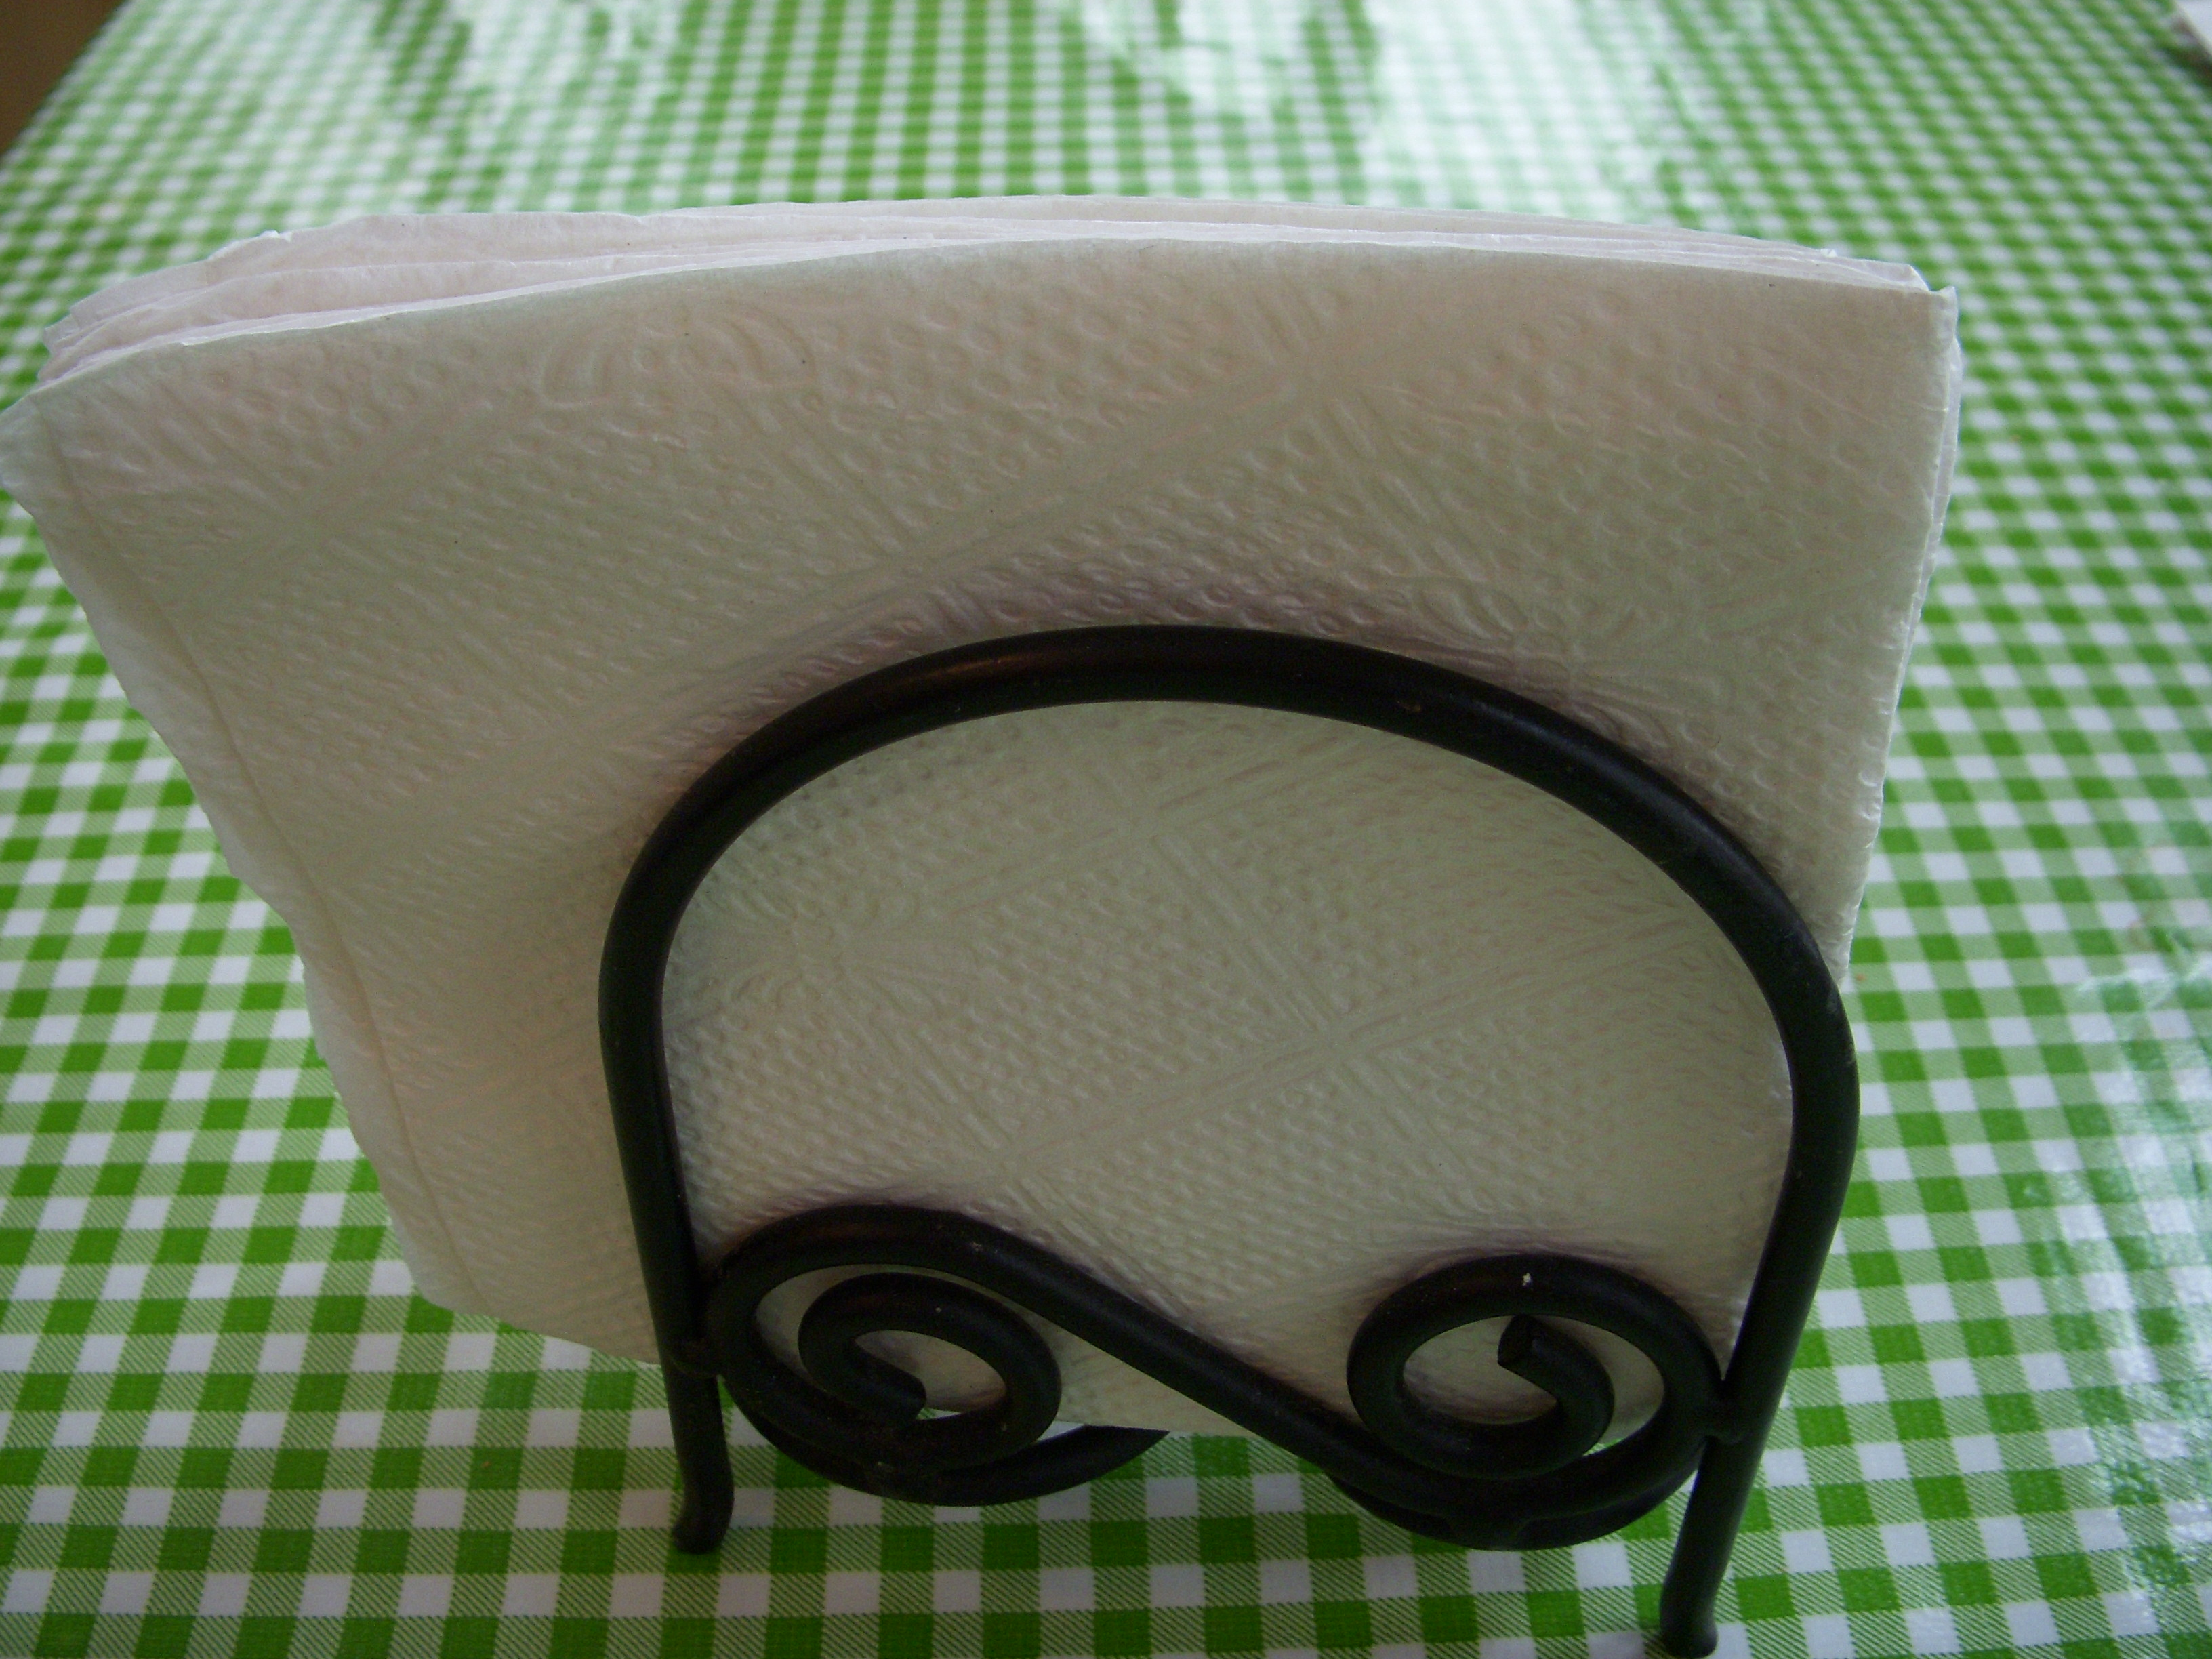 Napkin Holder Wikipedia